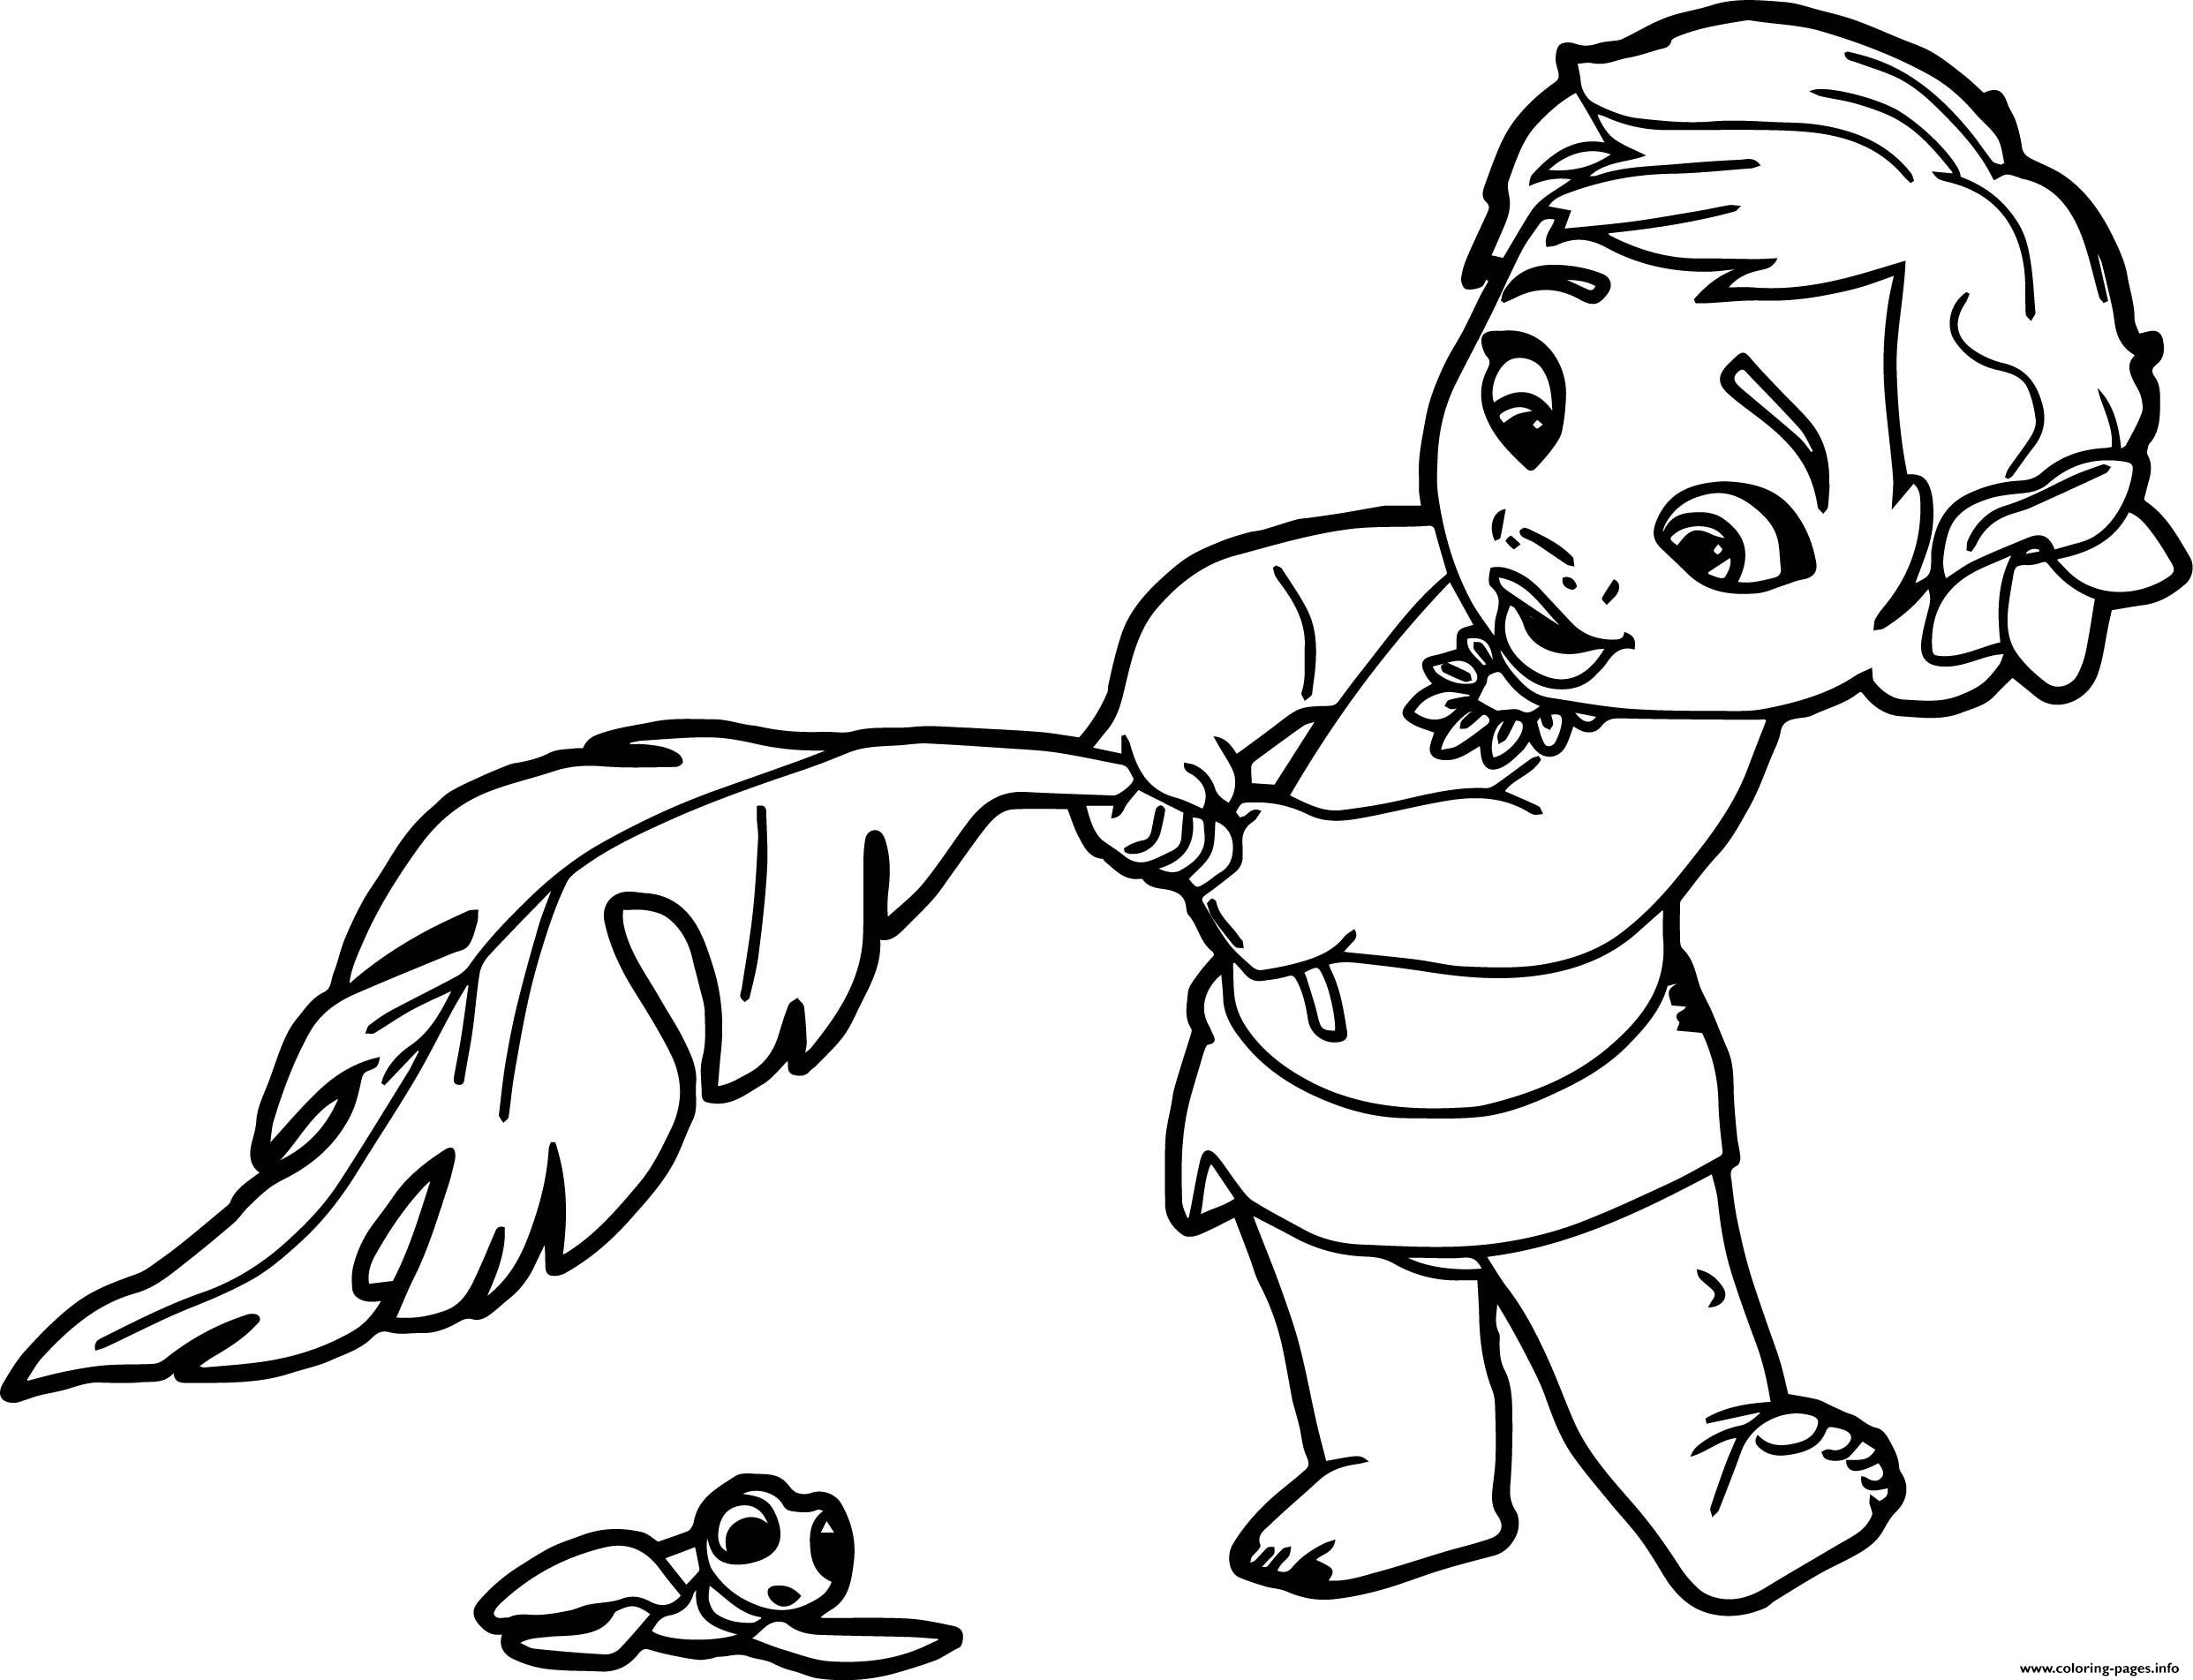 2484x1903 Print Baby Moana Princess Disney Coloring Pages Magic